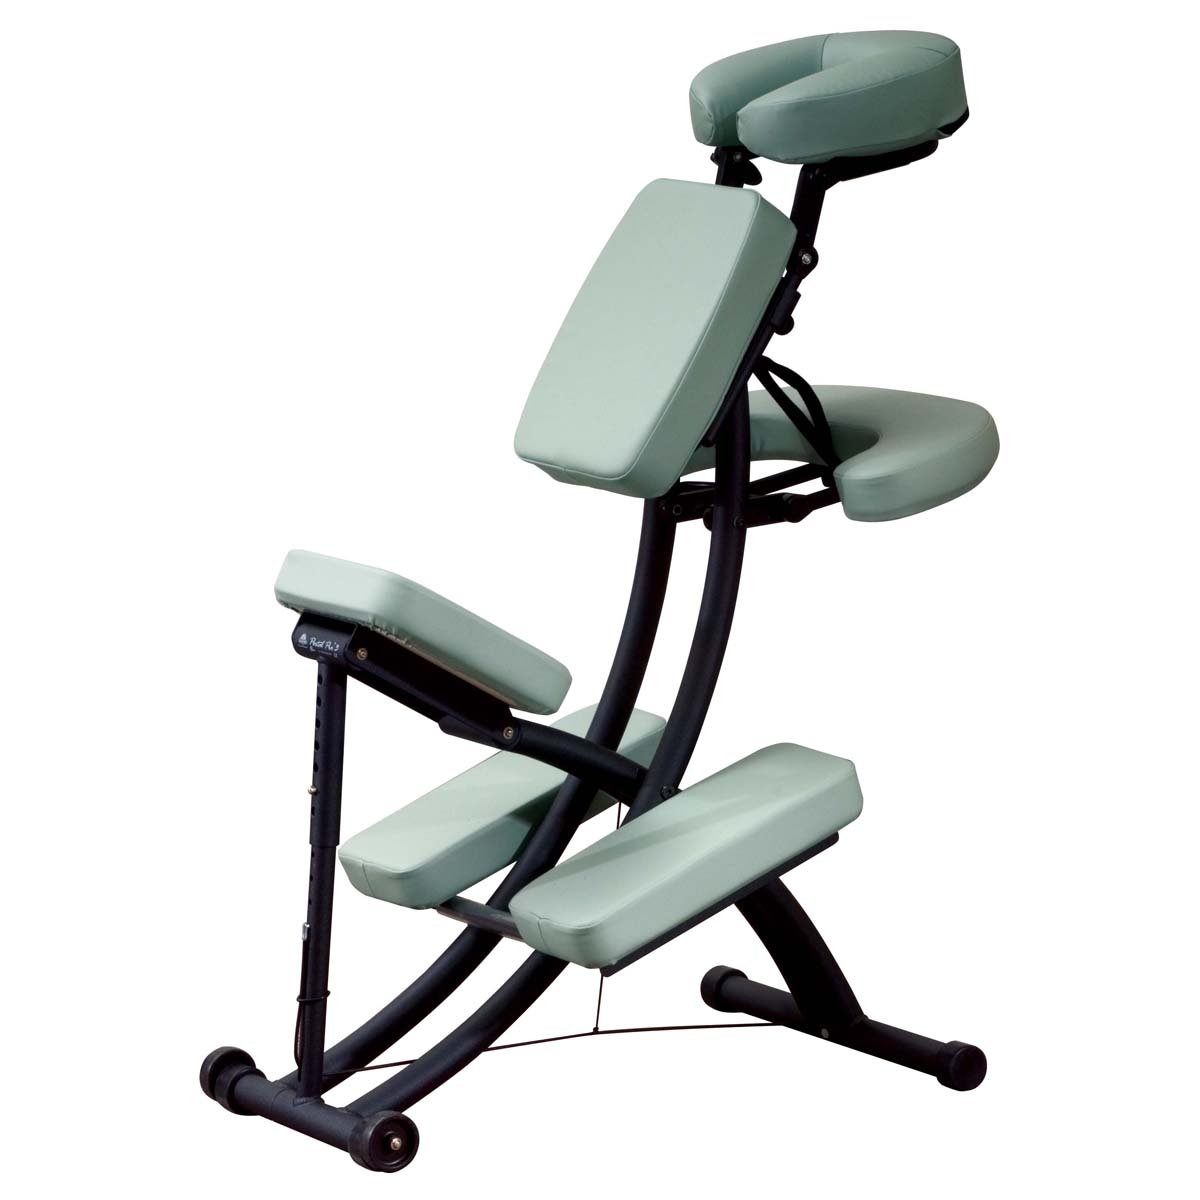 Reflexology Chair Portal Pro Portable Massage Chair